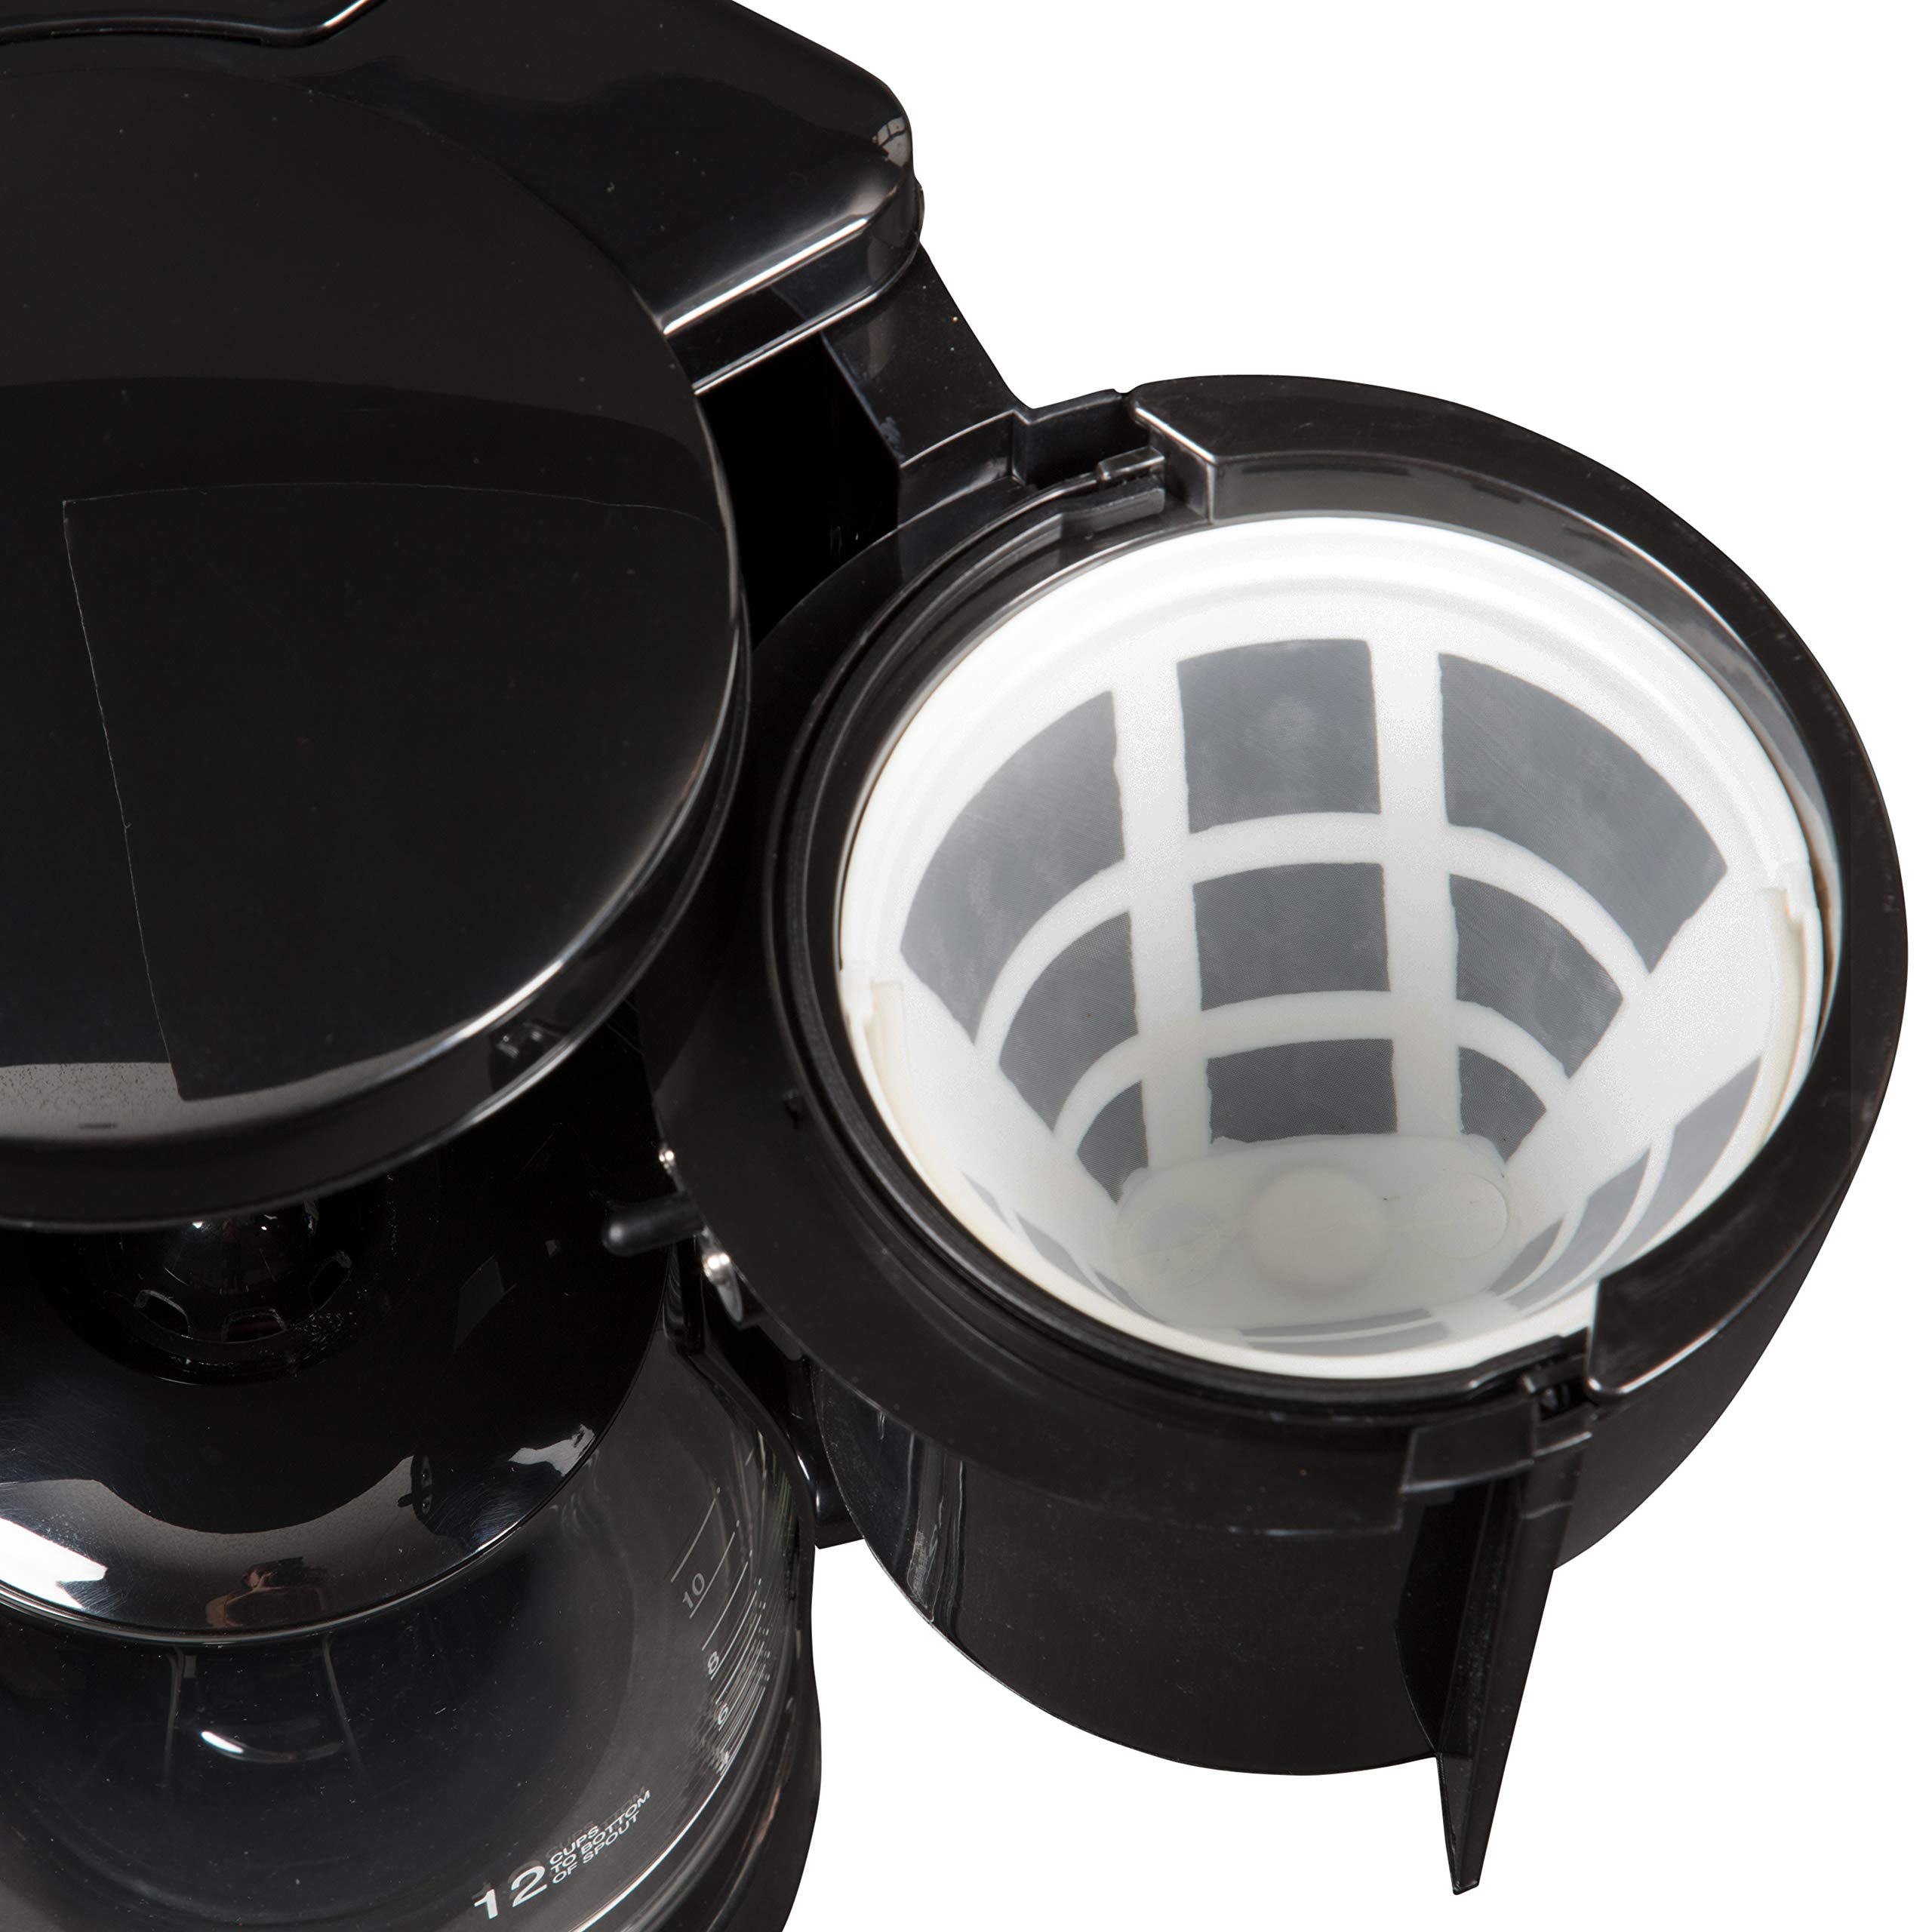 CucinaPro Double Coffee Brewer Station - Dual Coffee Maker Brews two 12-cup Pots, each with Individual Heating Elements by CucinaPro (Image #9)